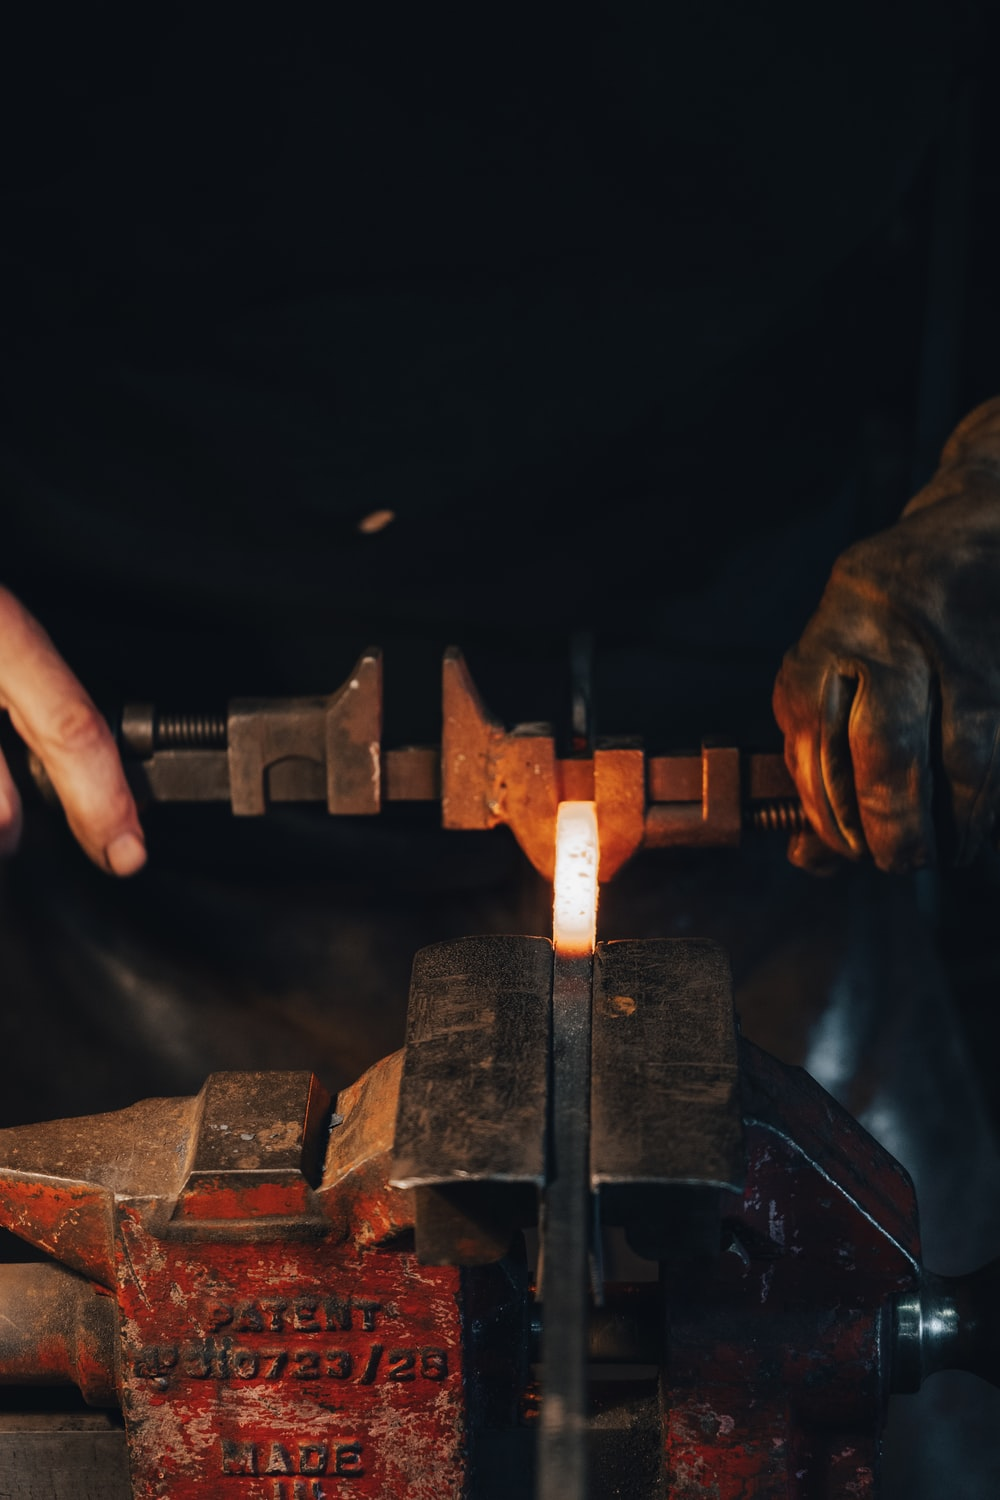 person holding brown metal tool